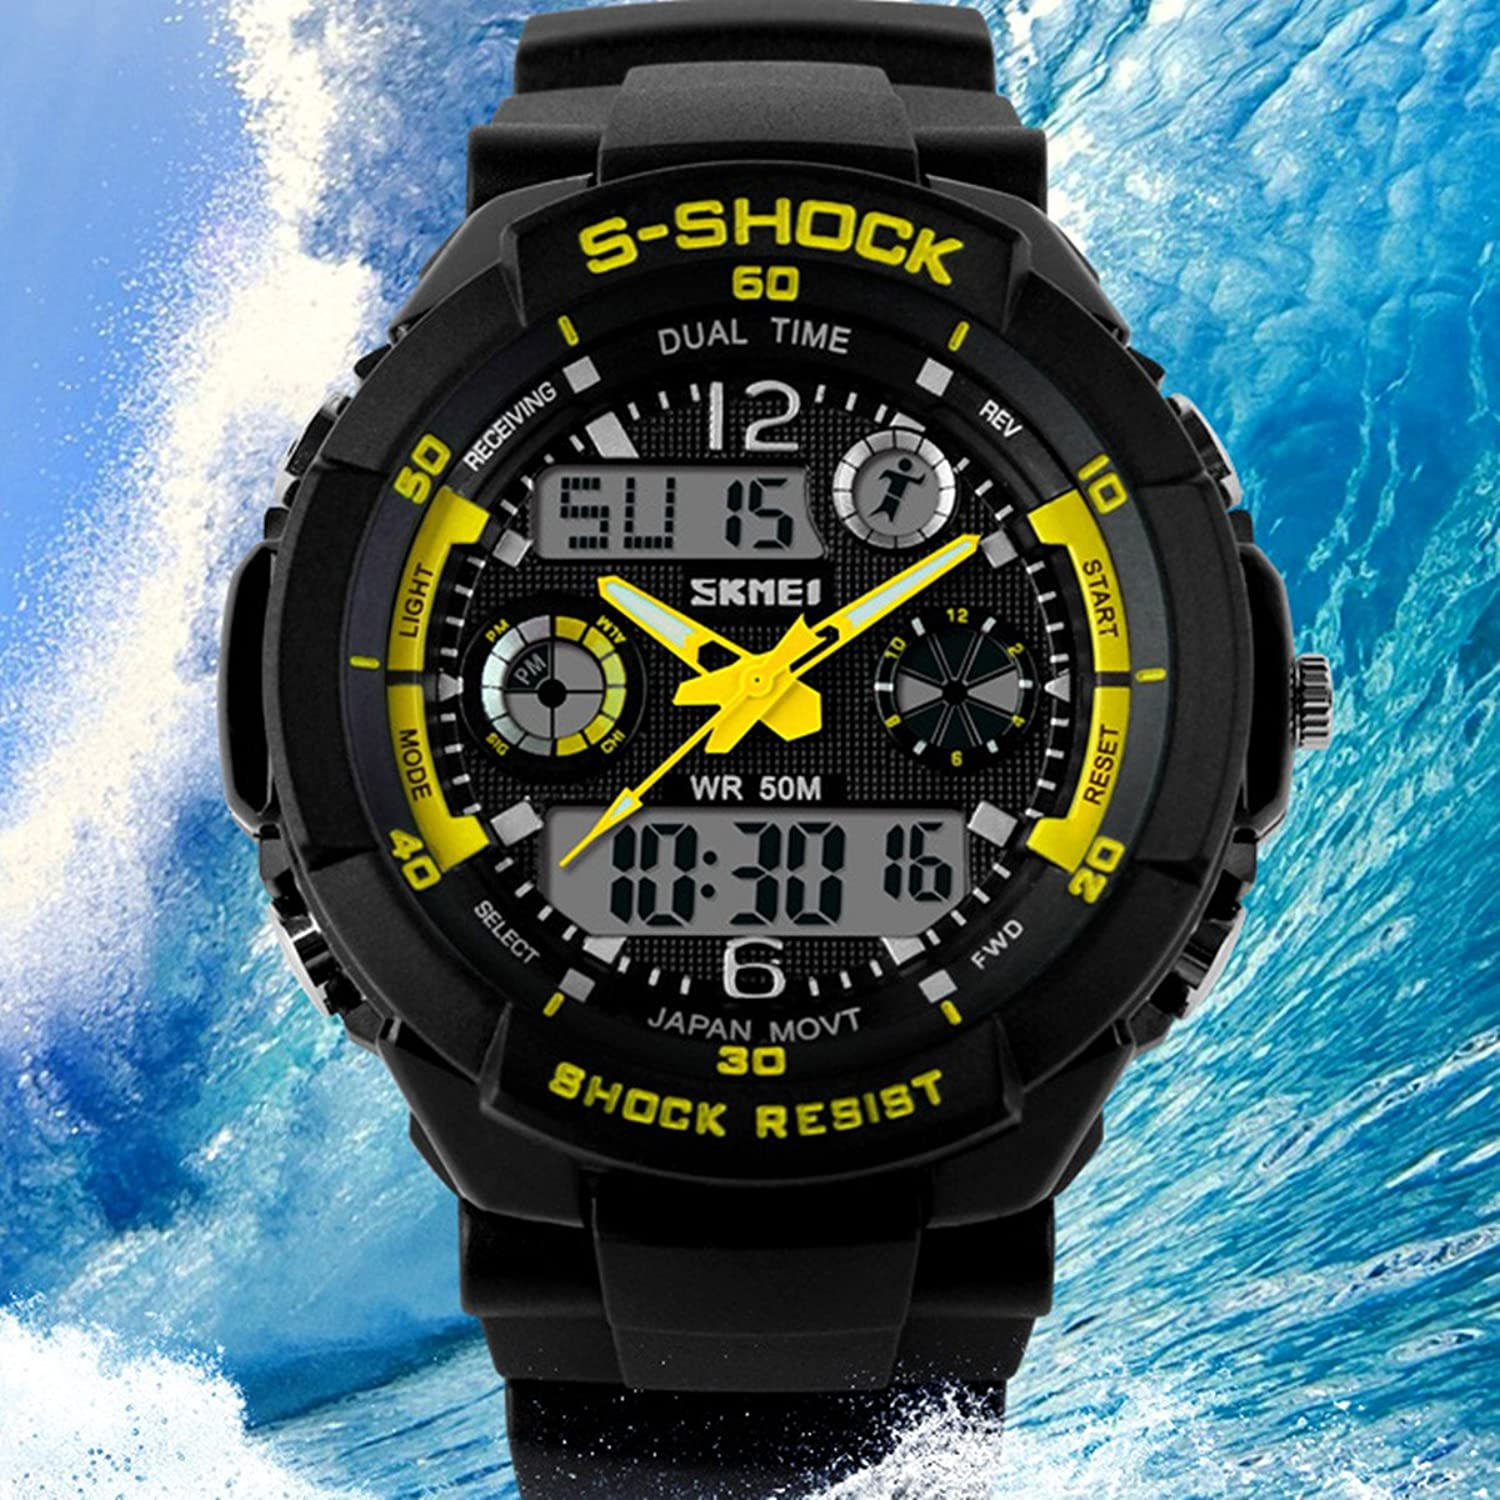 Amazon.com: Relojes de Hombre Sport LED Digital Military Water Resistant Digital Men Watch: Watches